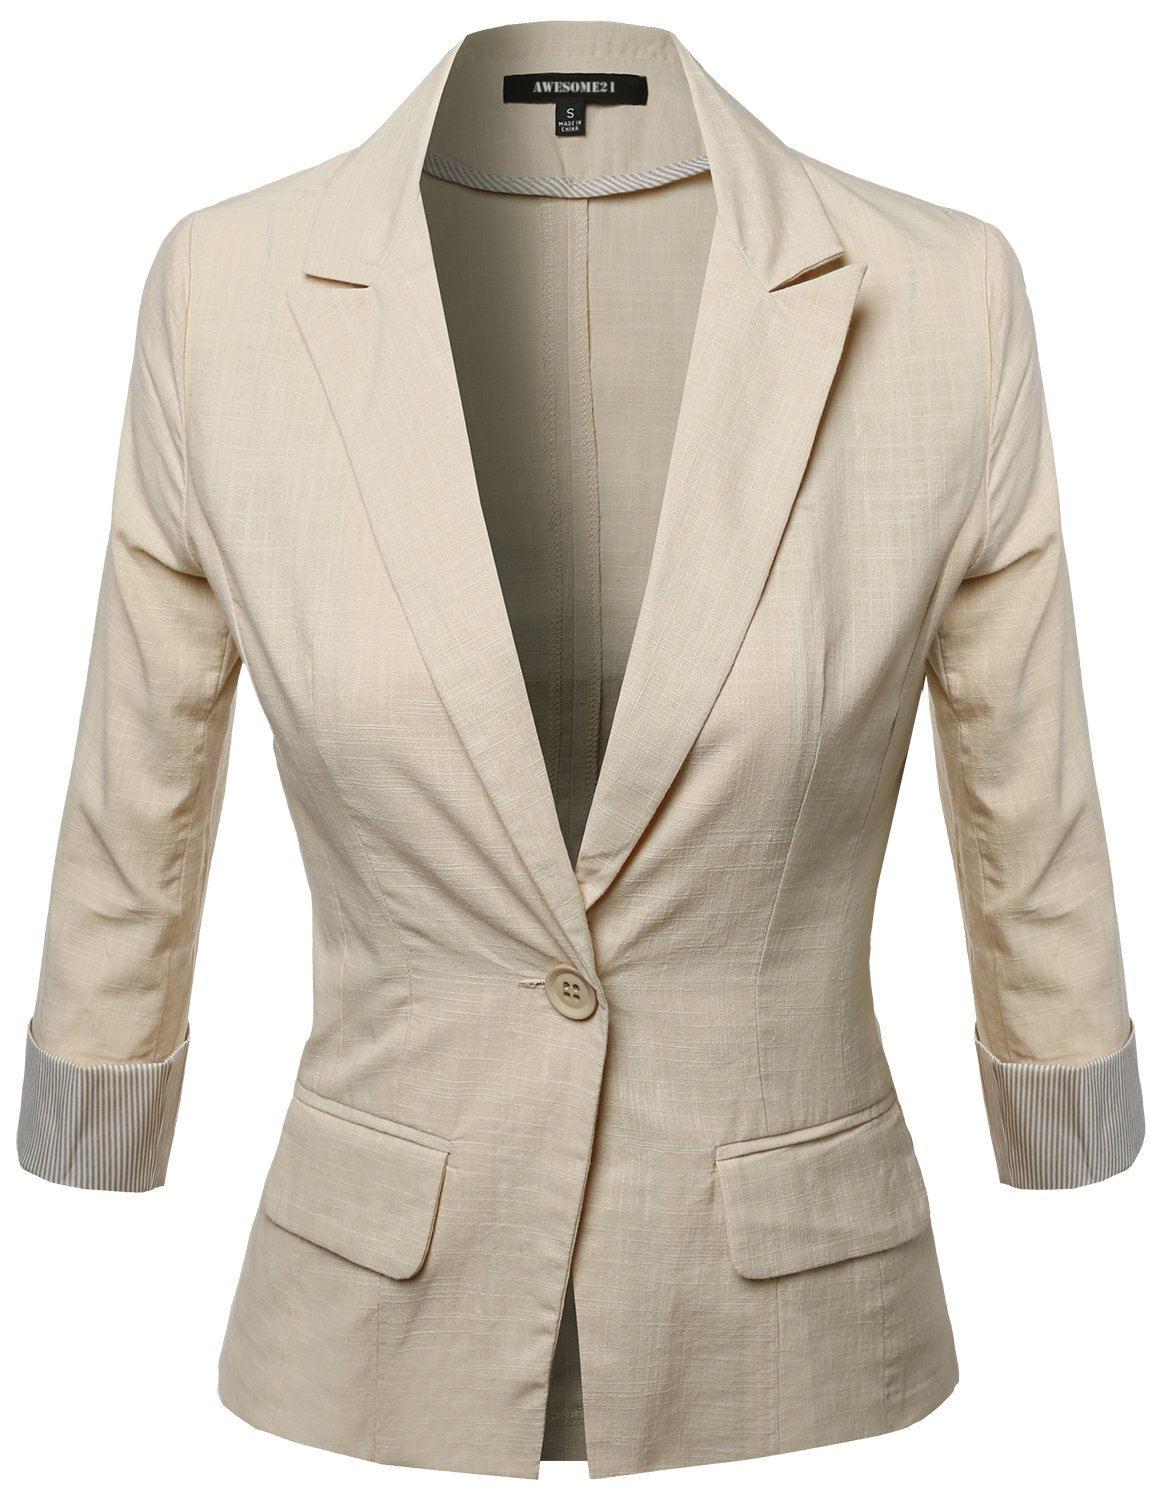 Awesome21 Women's 3/4 Sleeve Contrast Cool Touch Fabric Blazer